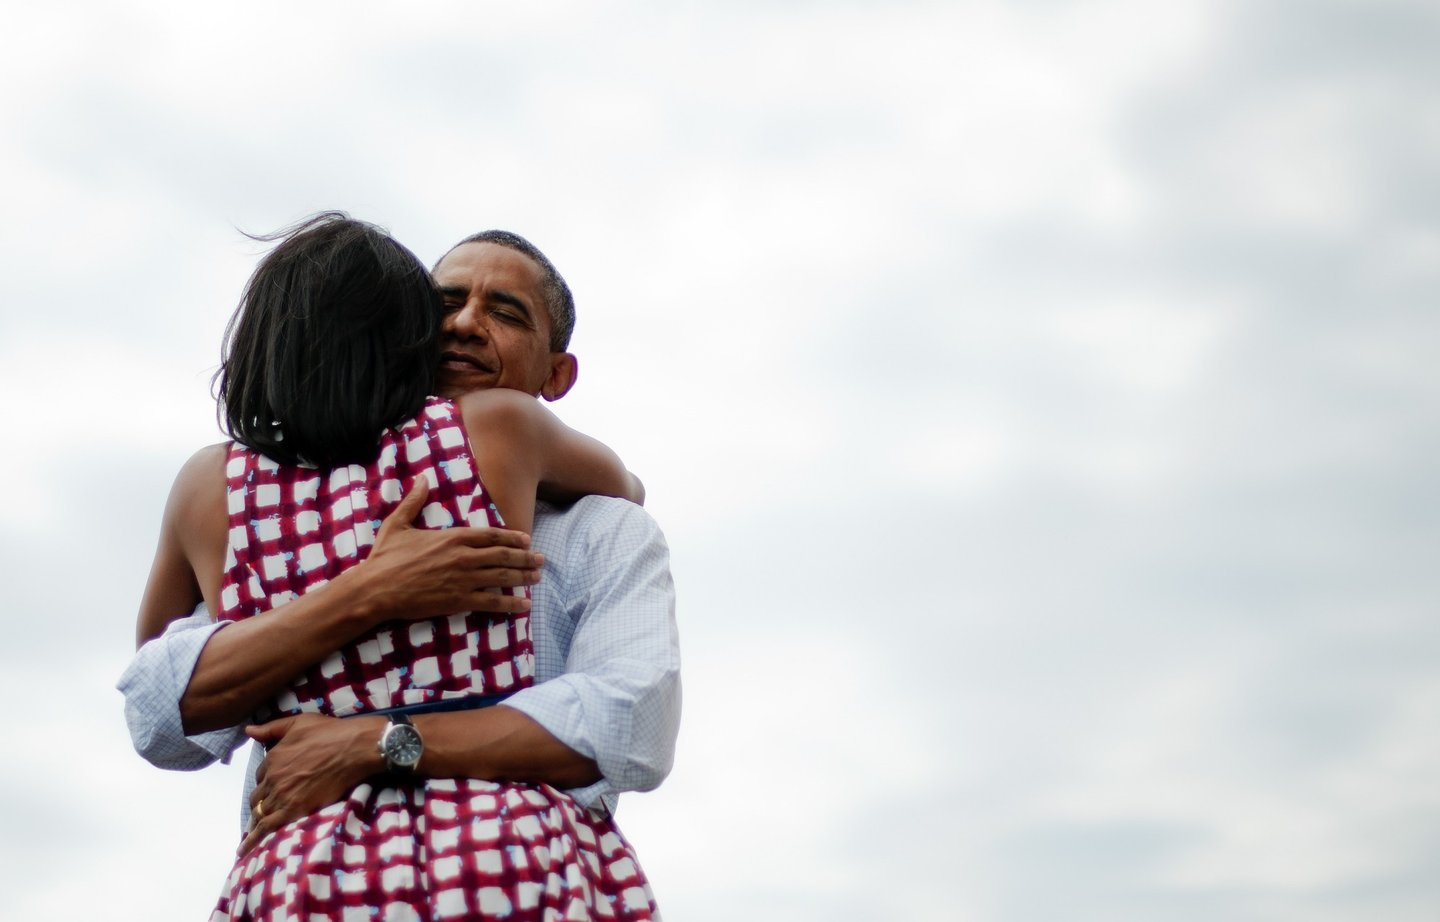 First Lady Michelle Obama (L) and US President Barack Obama (R) hug after delivering remarks during a campaign event at the Alliant Energy Amphitheater in Dubuque, Iowa, August 15, 2012, during his three-day campaign bus tour across the state. AFP PHOTO/Jim WATSON (Photo credit should read JIM WATSON/AFP/Getty Images)